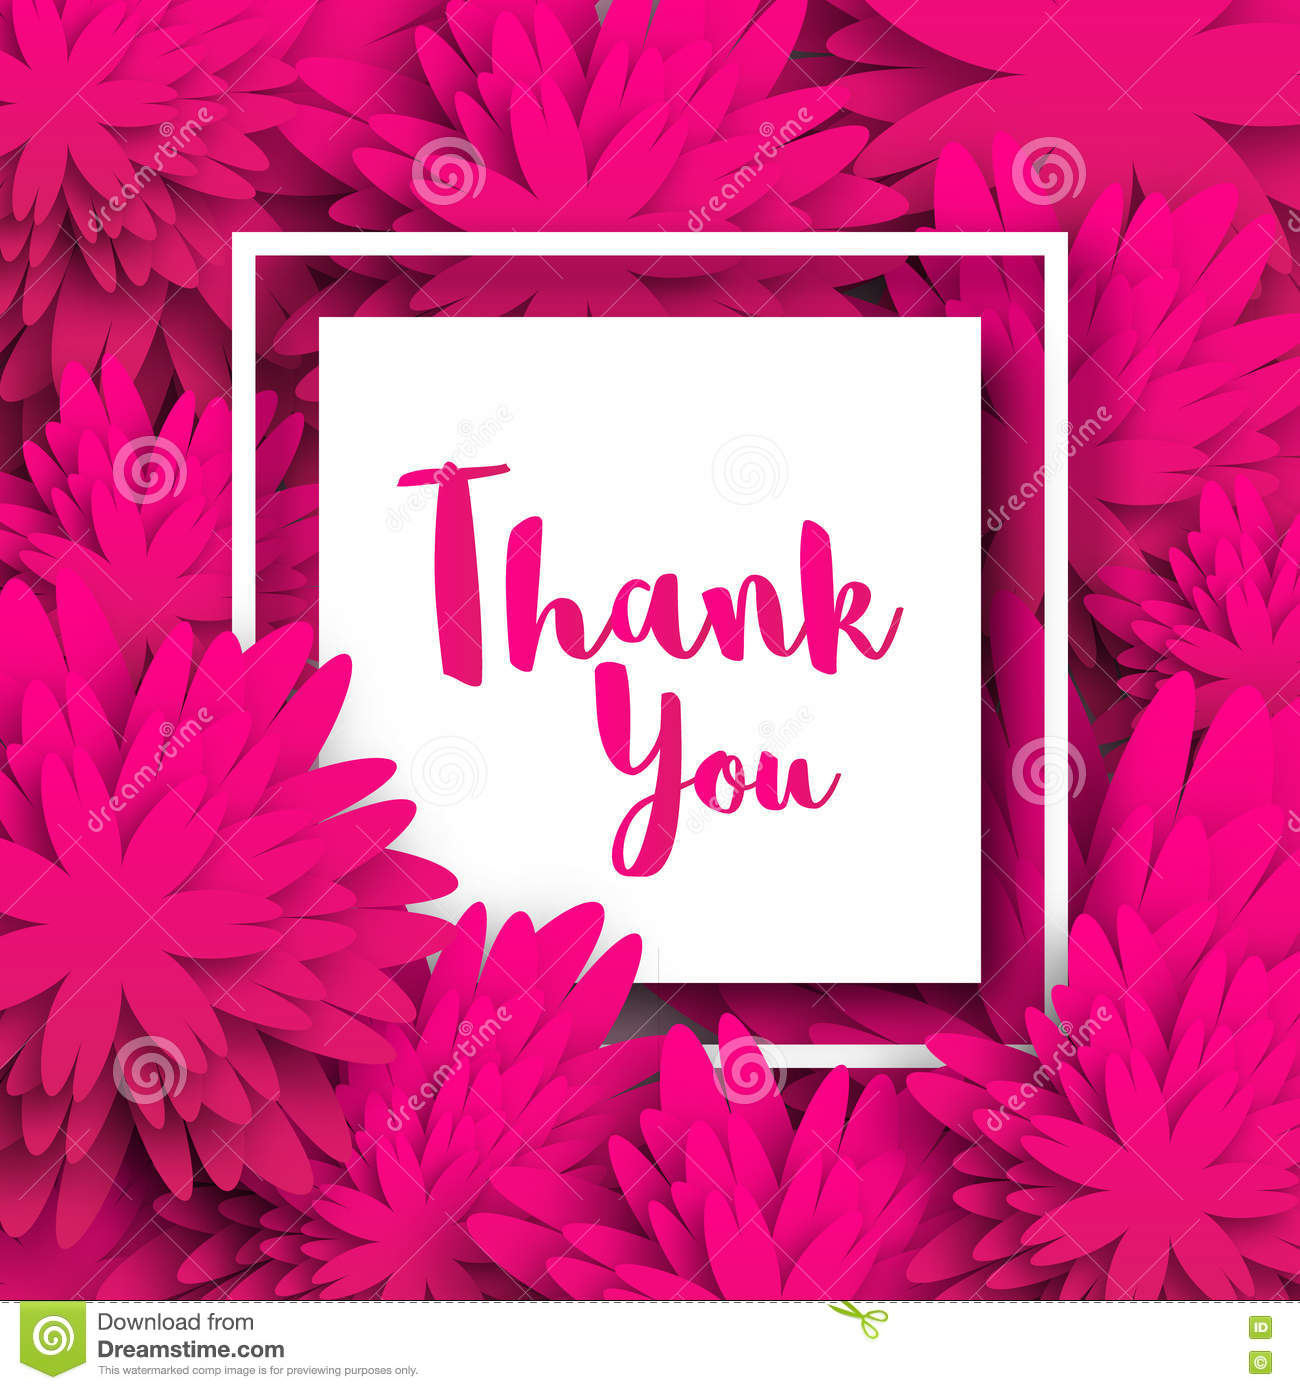 Thank You Spring Floral Card With Pink Origami Flowers Stock